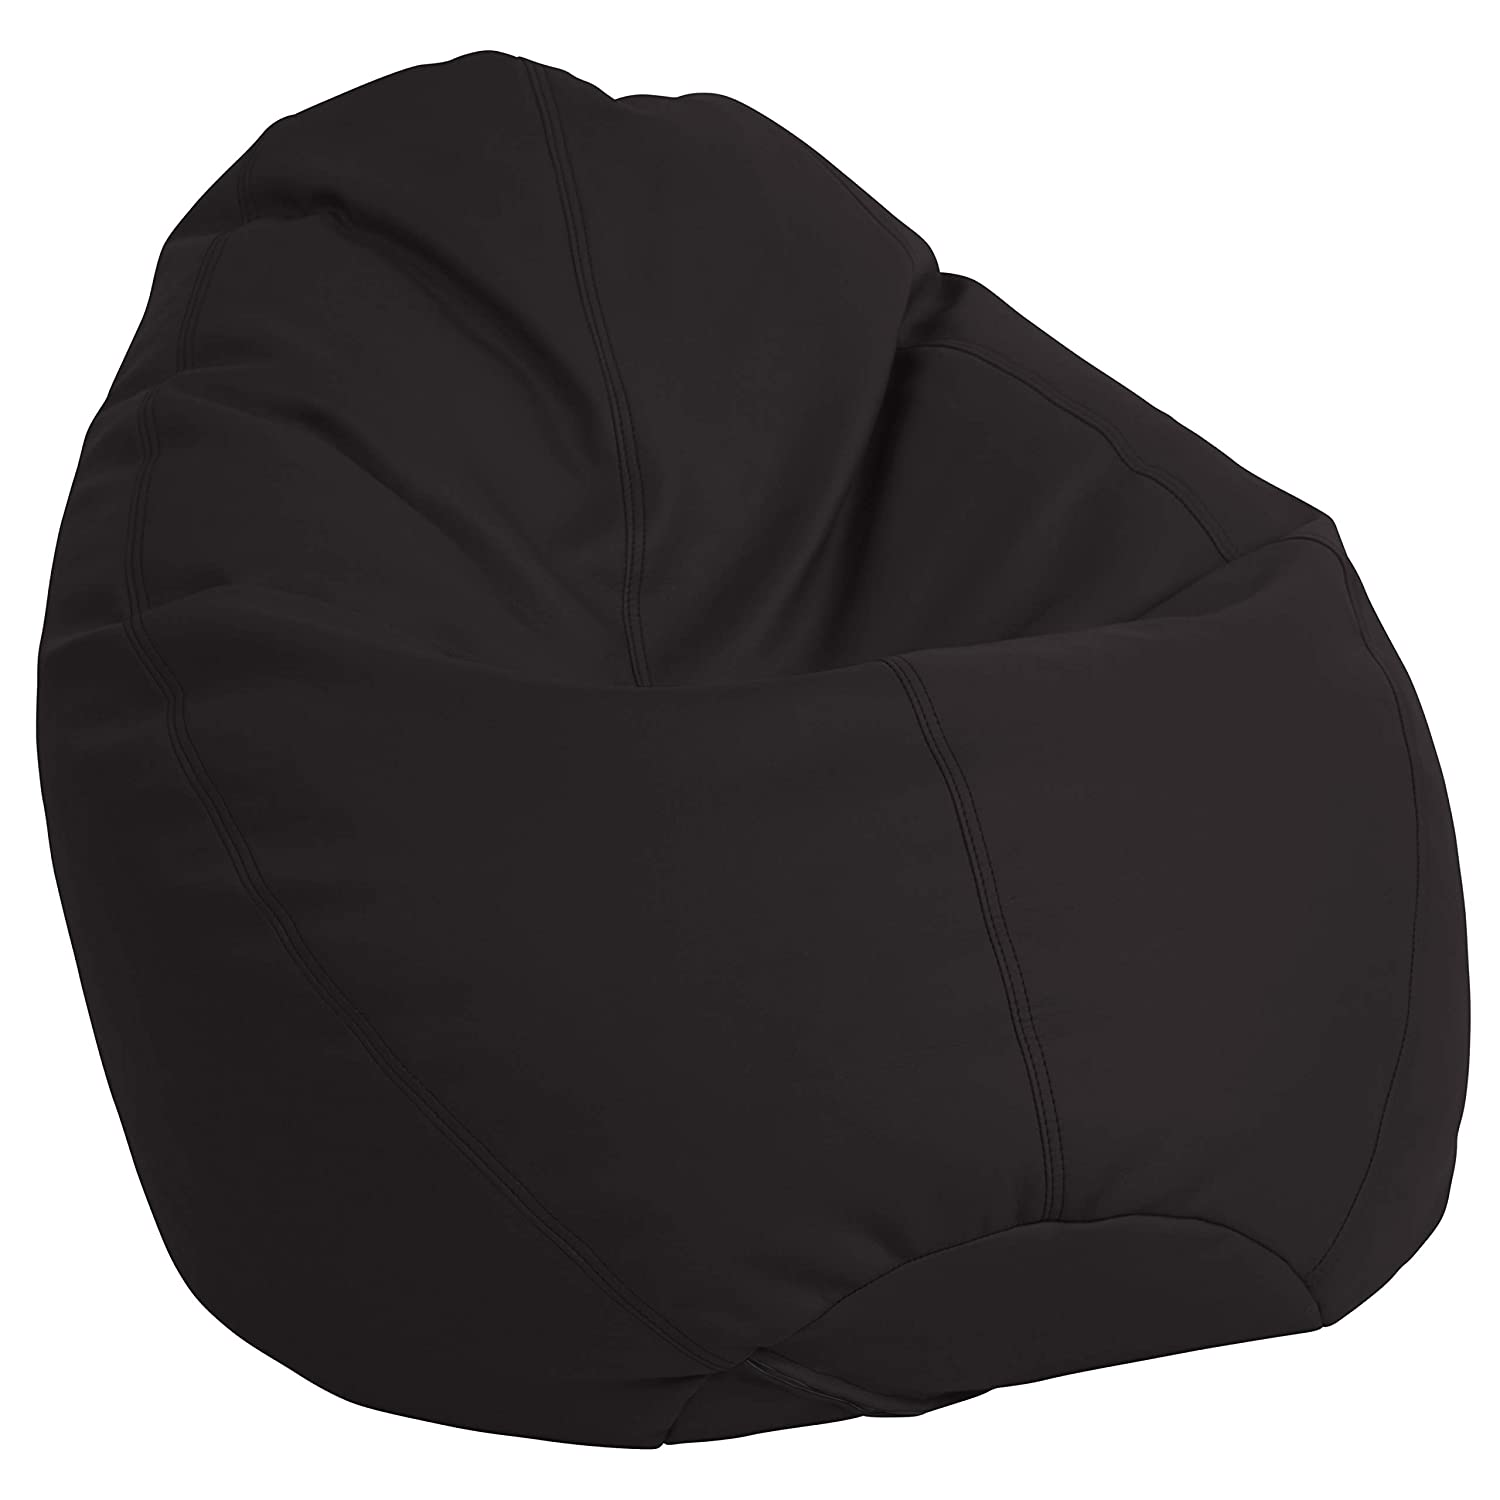 FDP Industry In a popularity No. 1 SoftScape Dew Drop Bean Bag with Supportive Chair High-Back